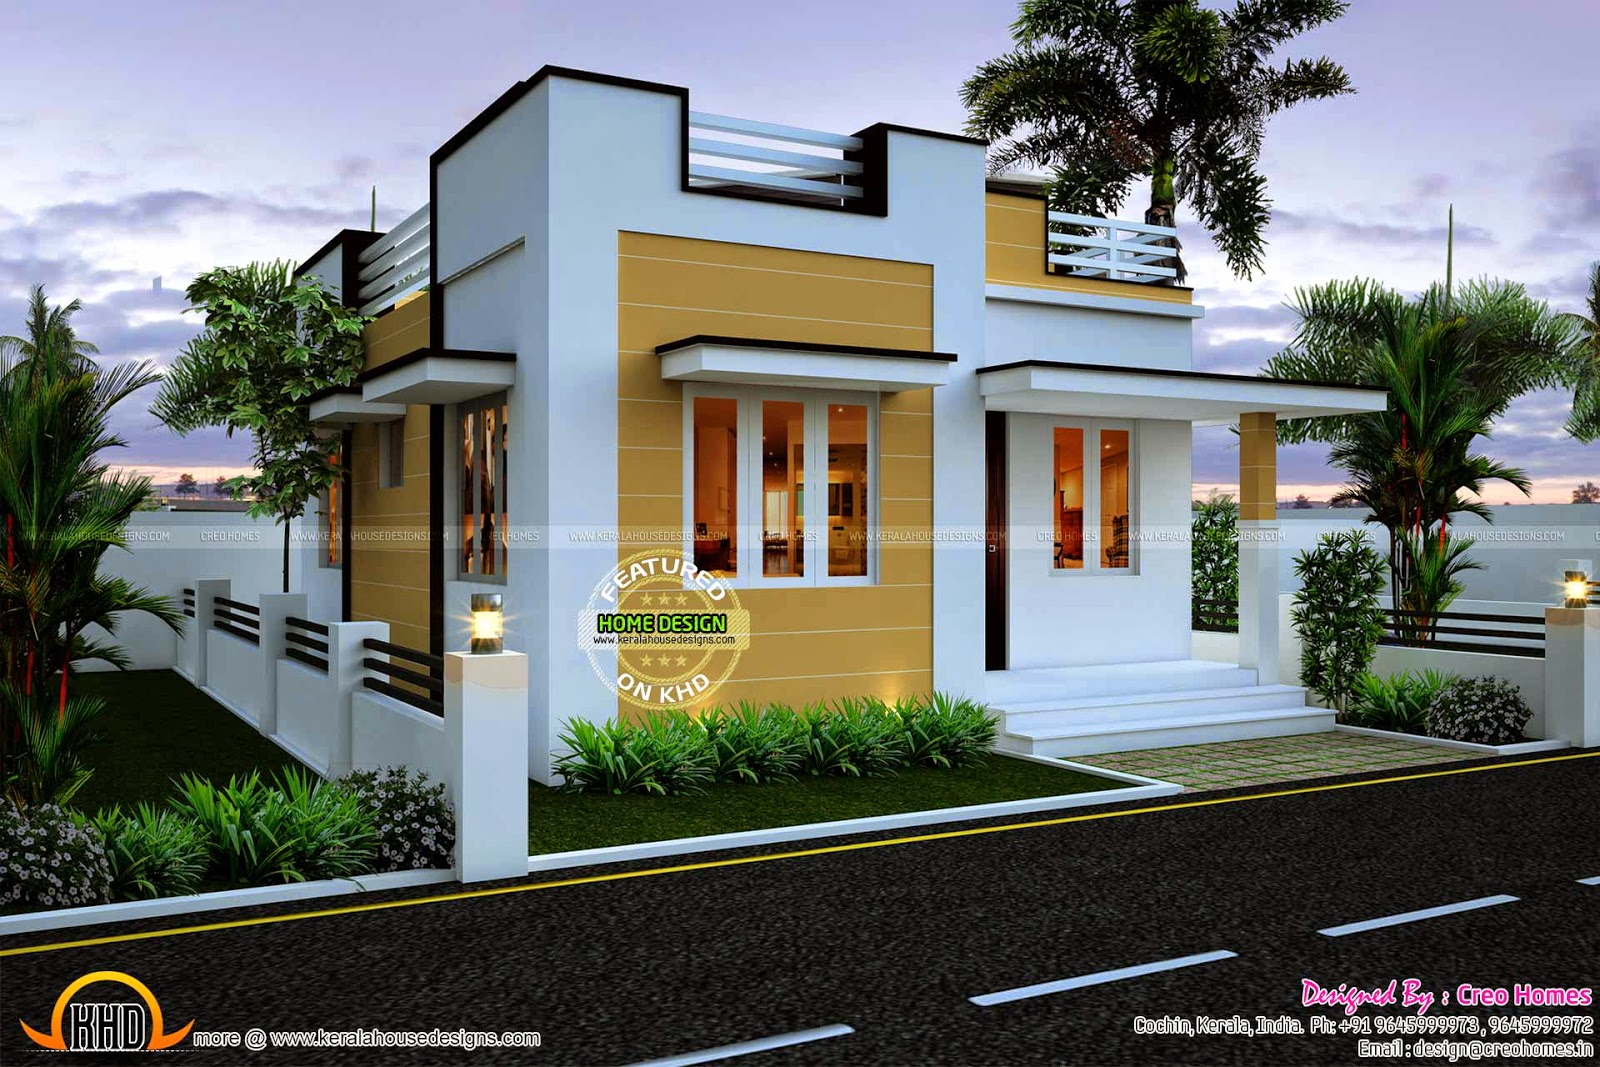 20 Lakh Home In Surat 545 Sq Ft Beautiful Kerala Home Plan With Budget Of 5 To 7